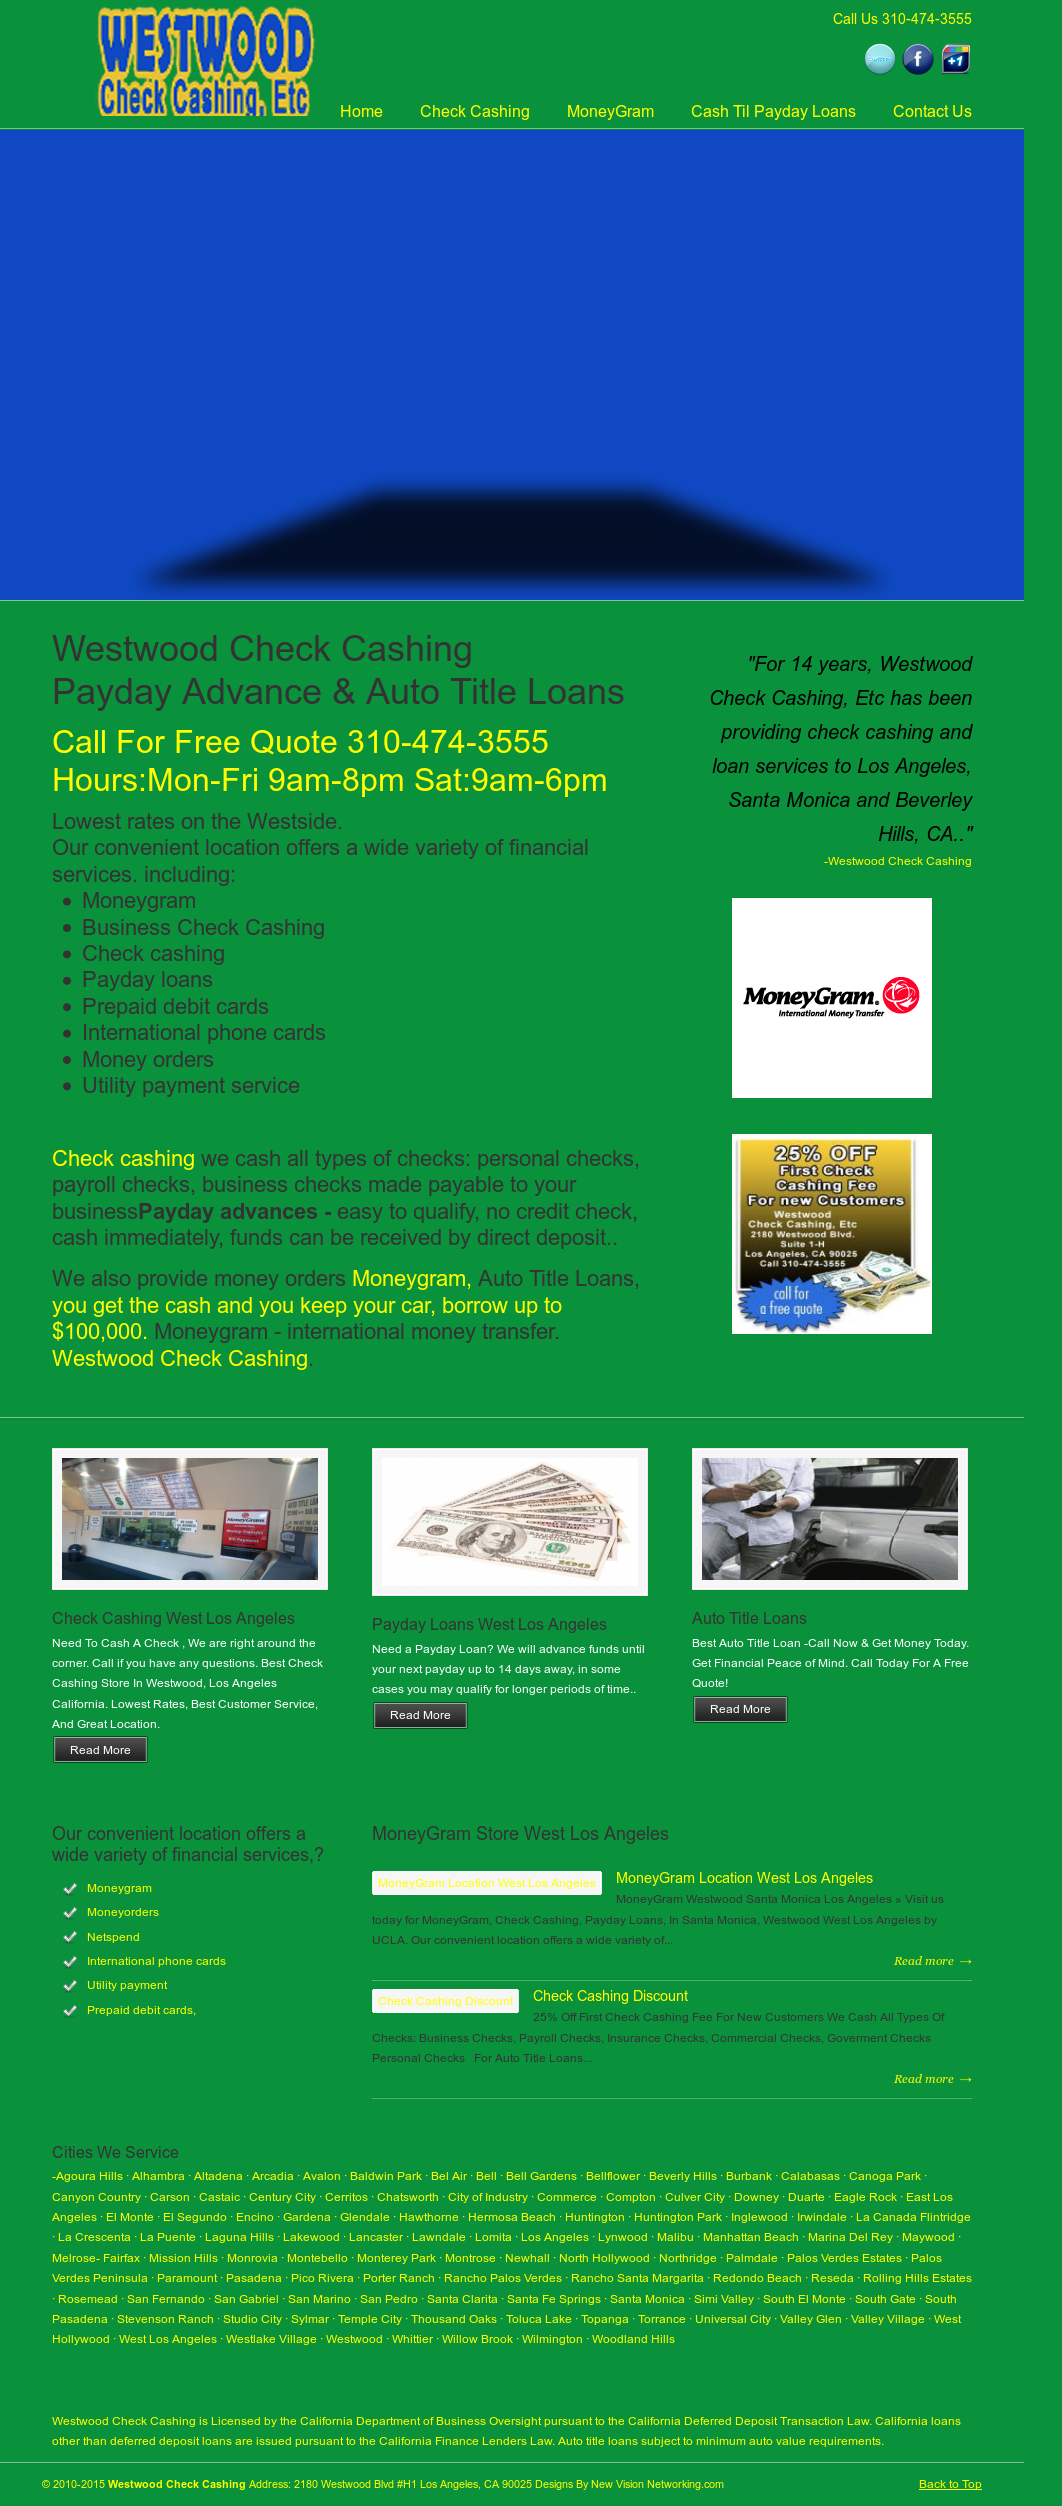 Westwood Check Cashing & Payday Loans Competitors, Revenue and